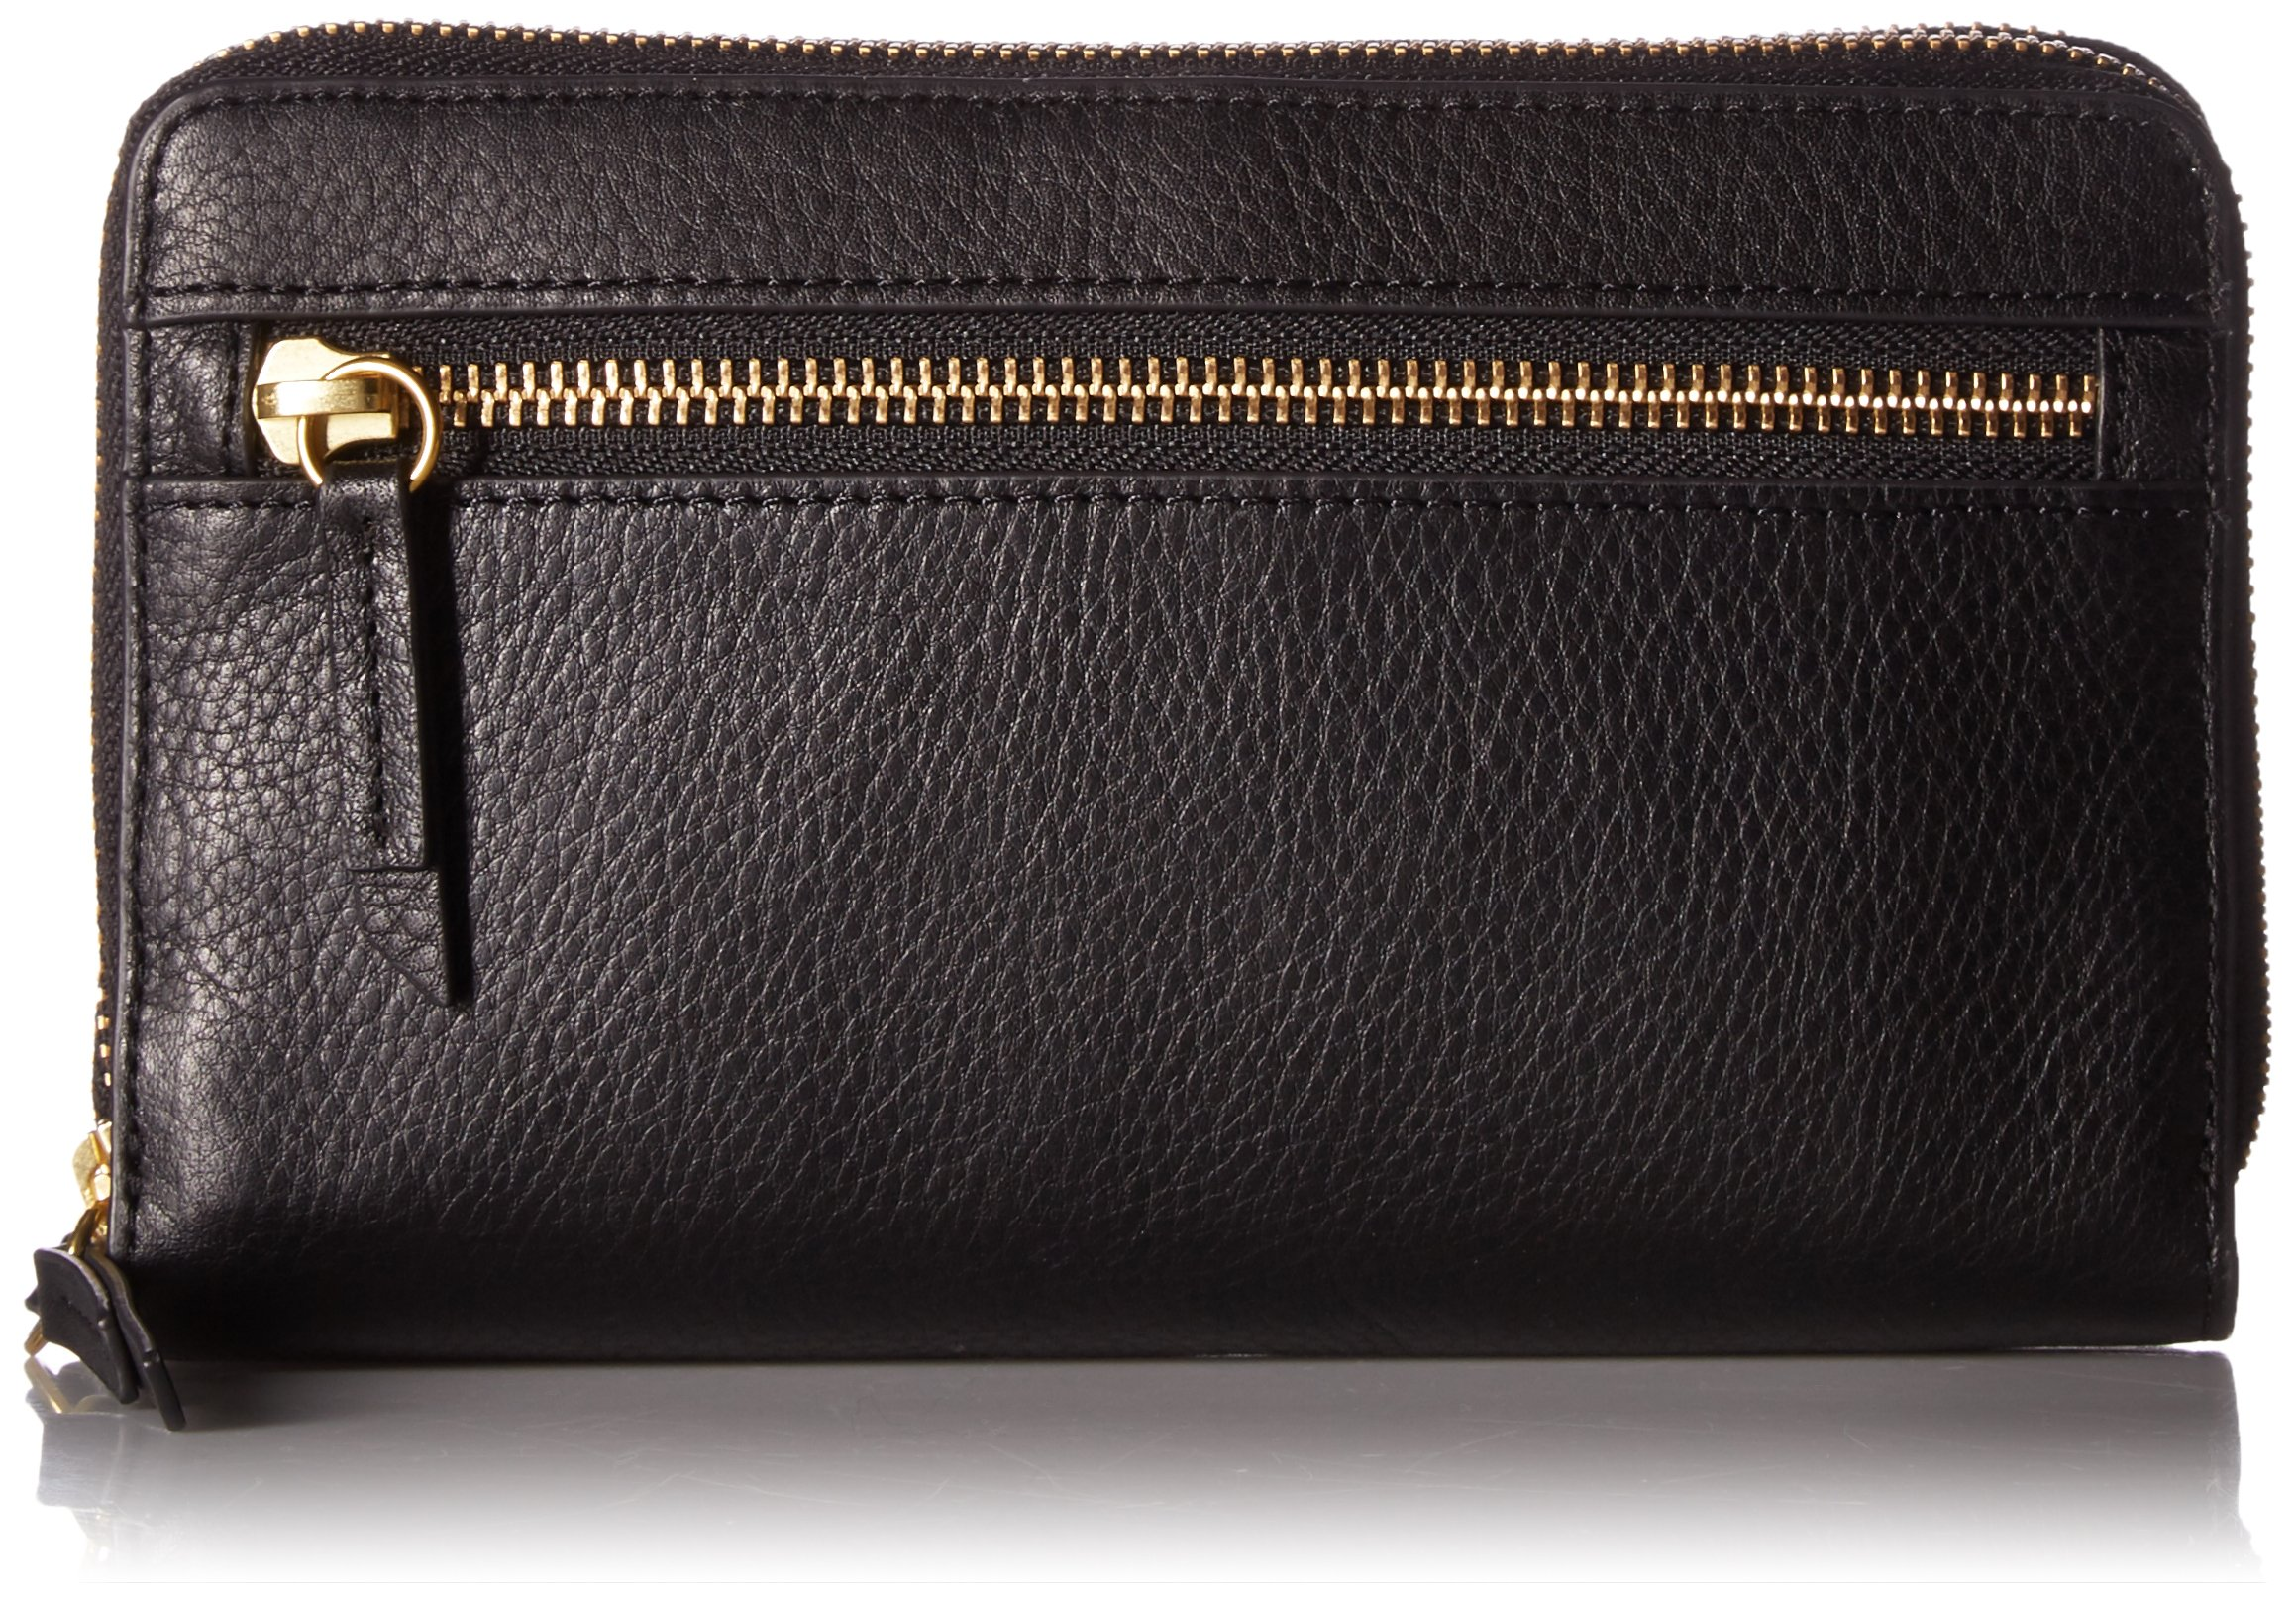 Fossil Raven Wallet on a String Bag, Black by Fossil